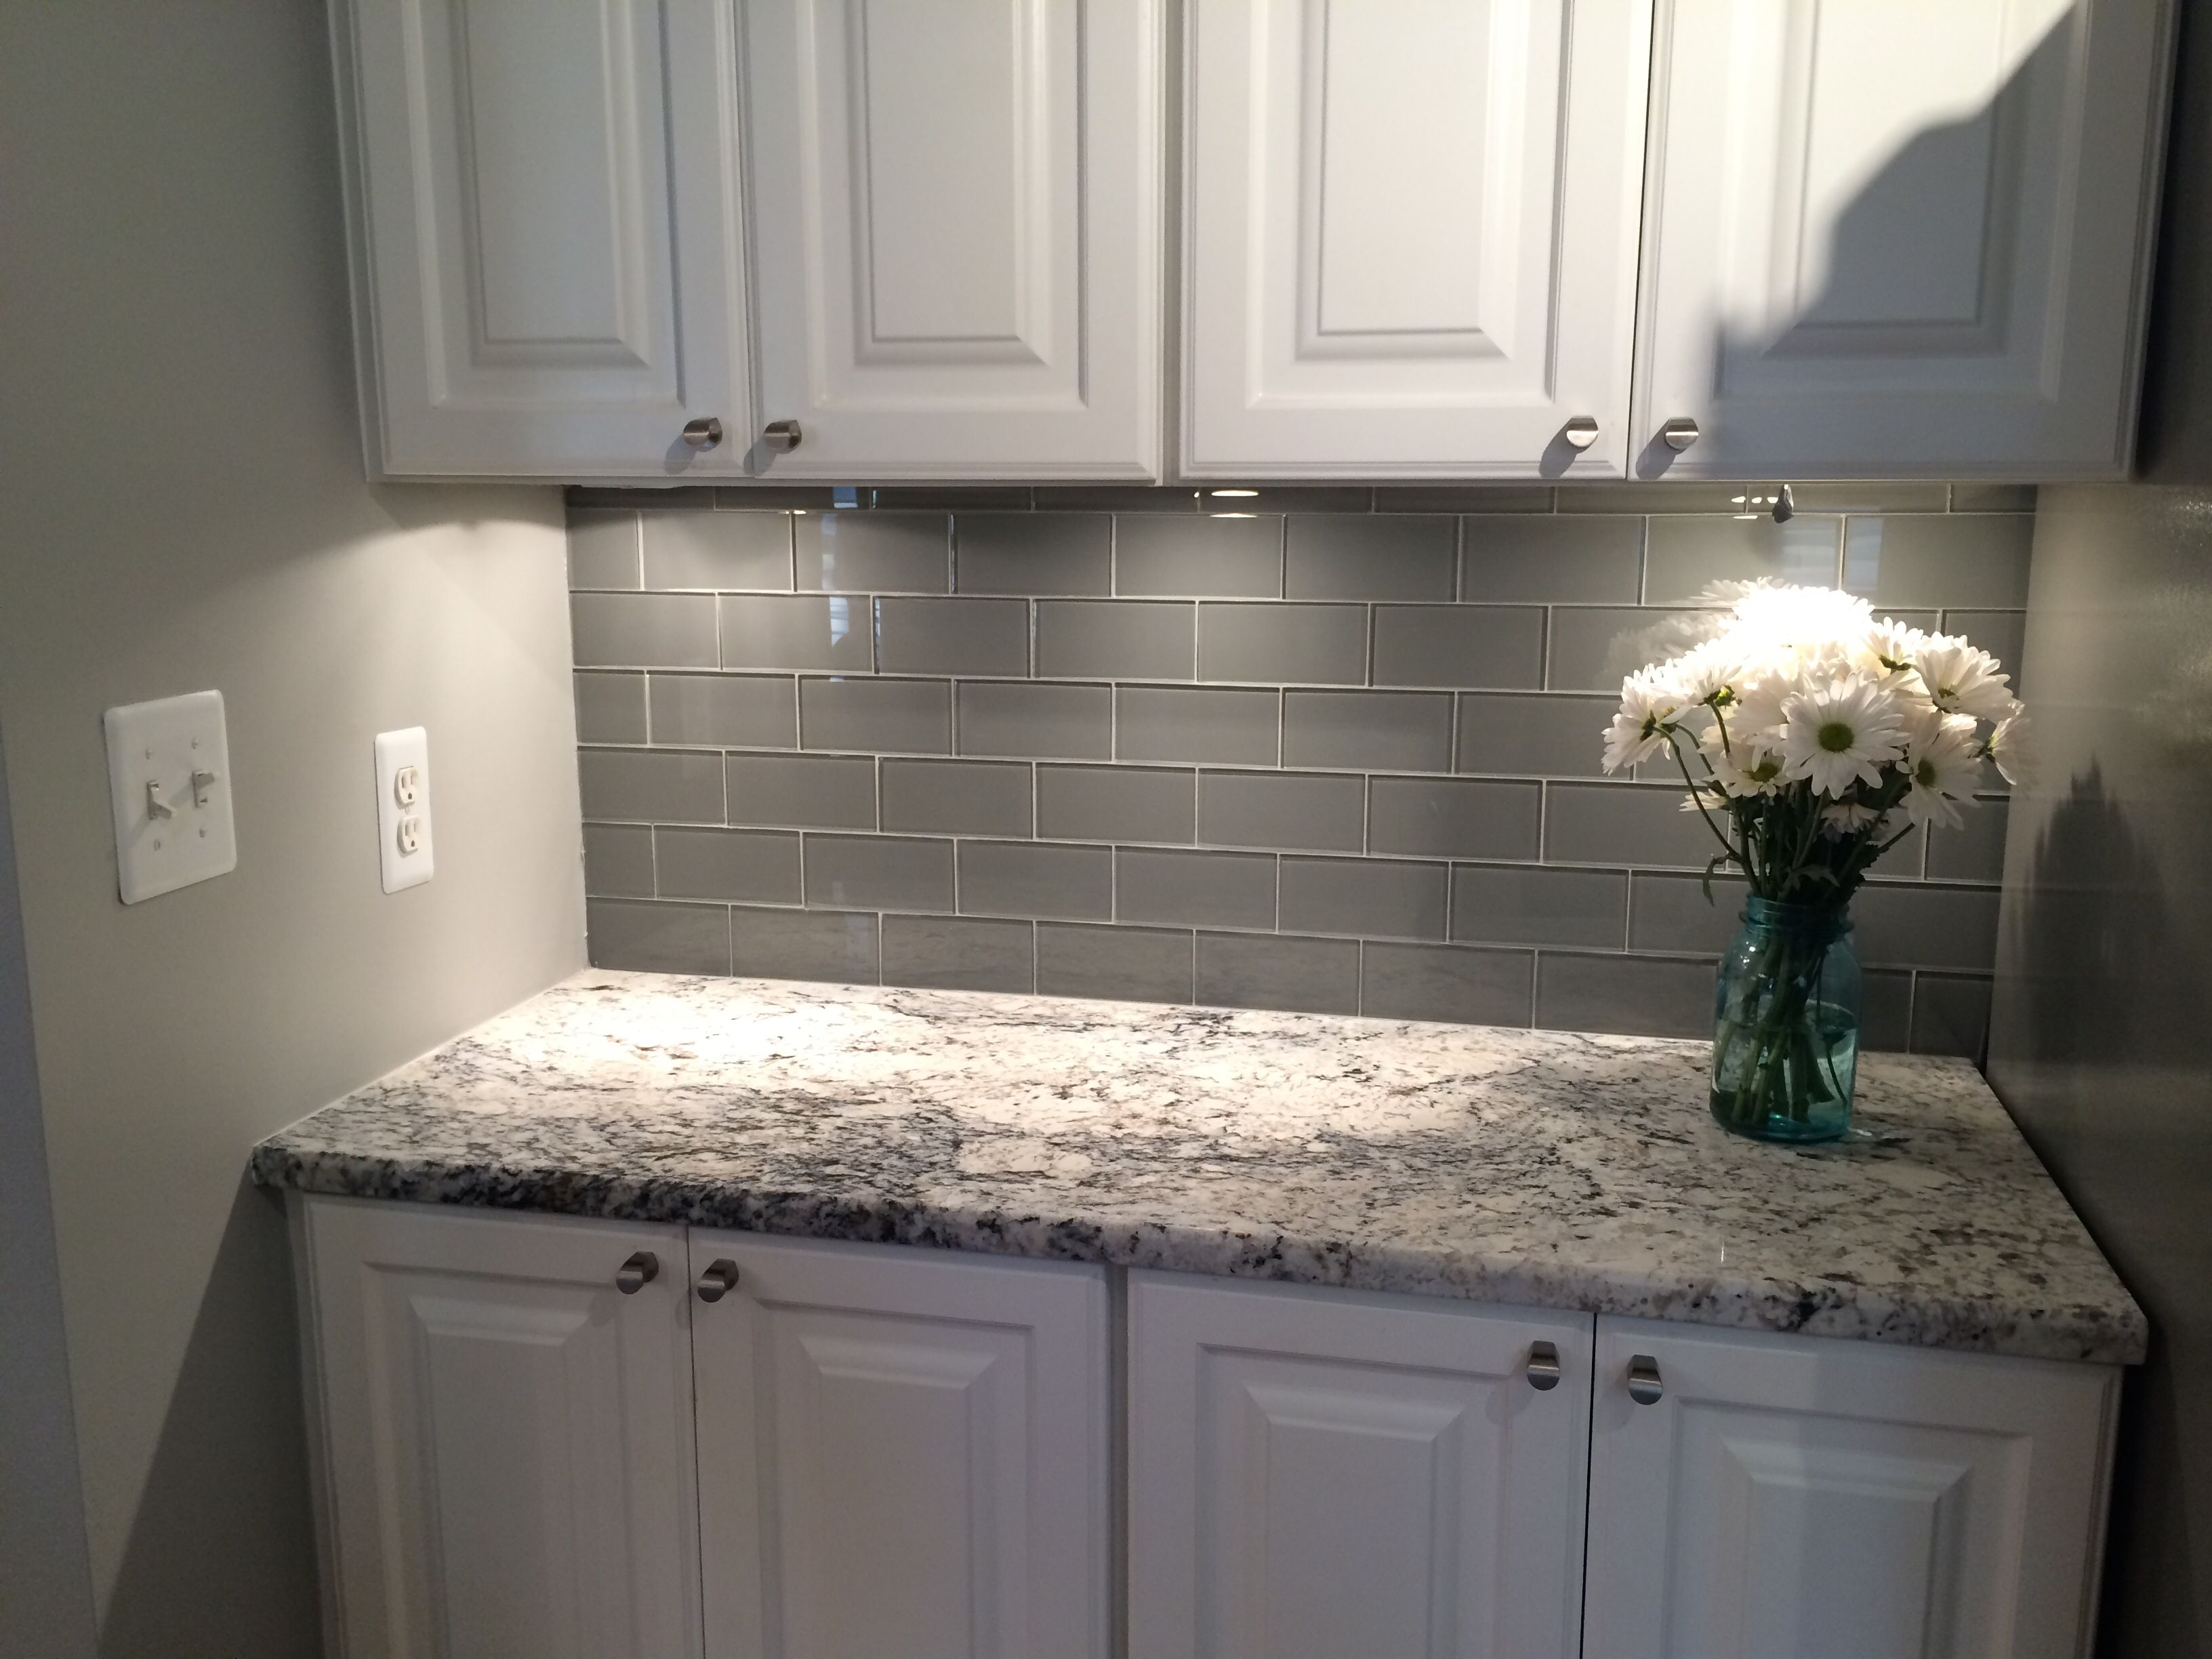 Grey glass subway tile backsplash and white cabinet for small space grey glass subway tile backsplash and white cabinet for small space dailygadgetfo Image collections